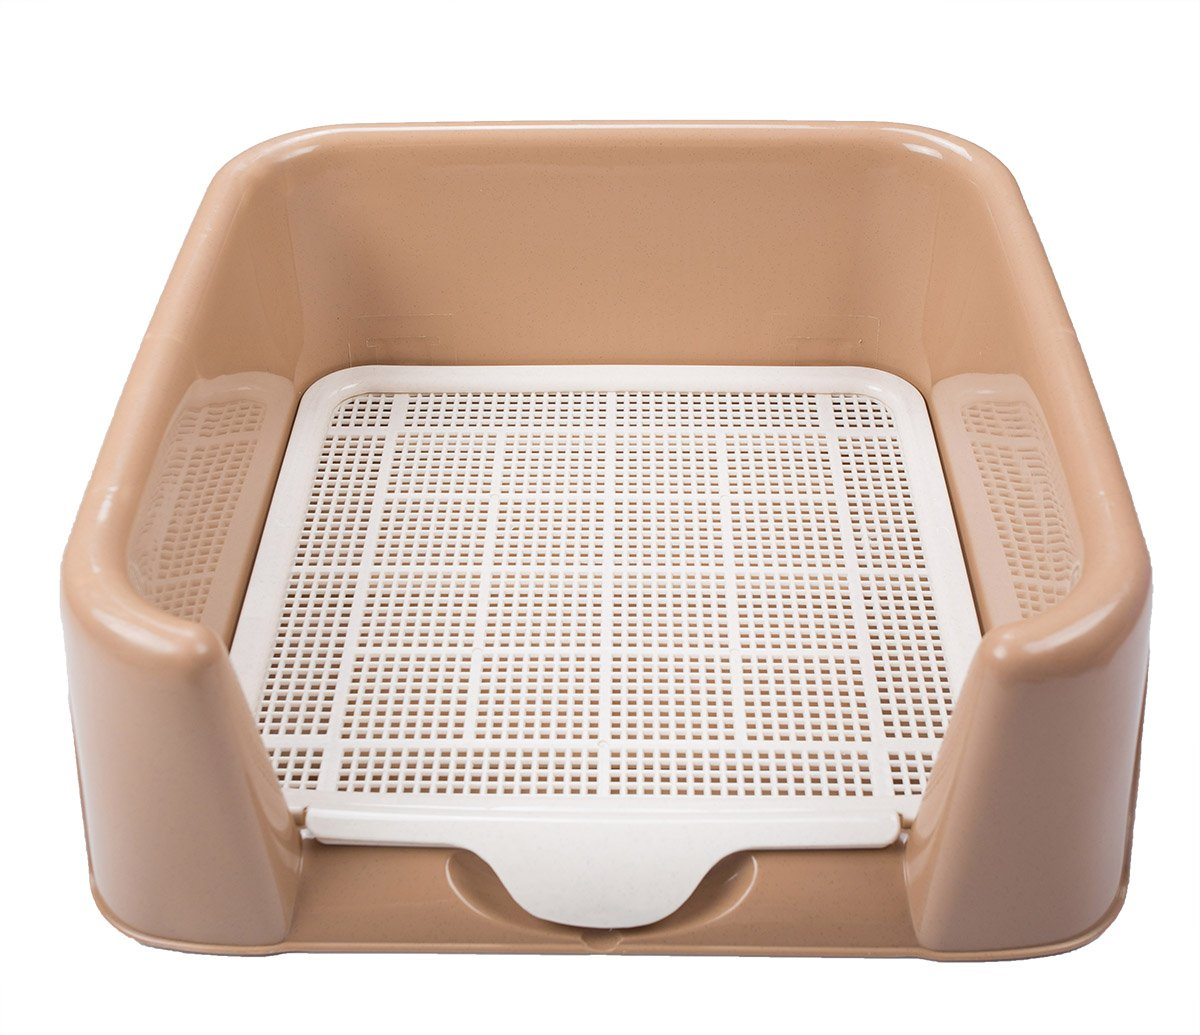 FATPET Dog Toilet, Portable Plastic Indoor Dog Toilet High Protection Portable Pad Holder (Brown)